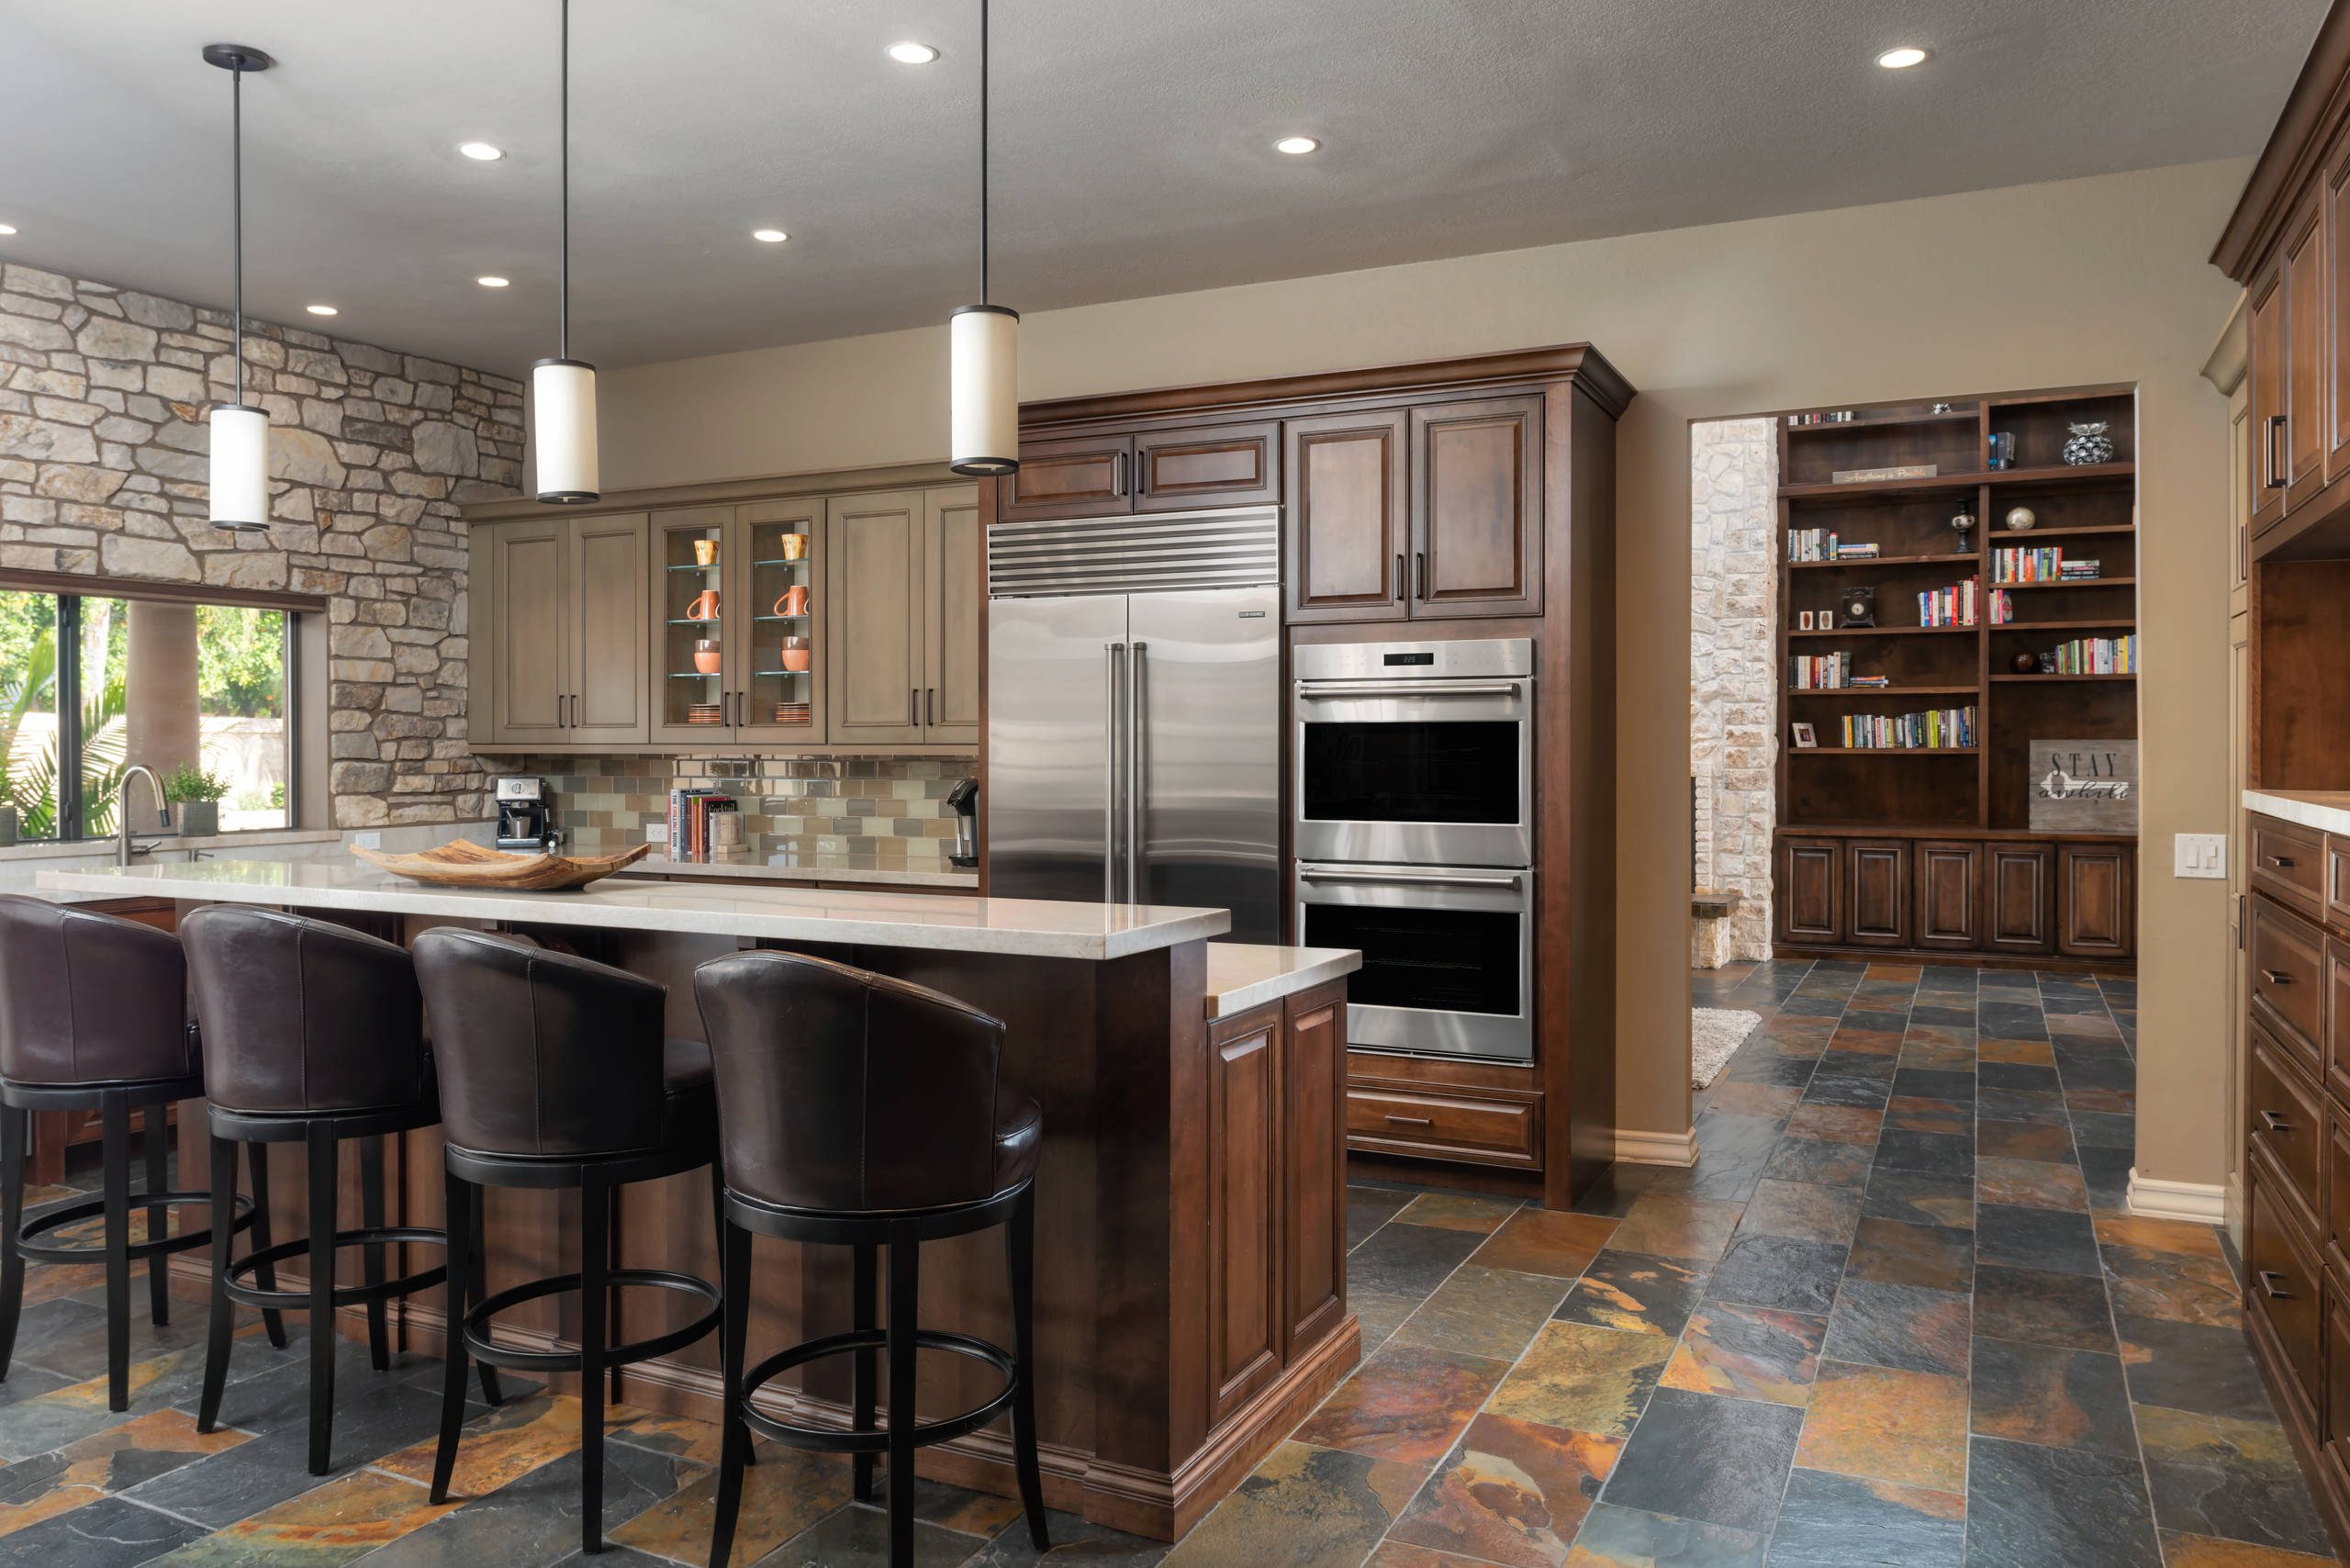 75 Beautiful Kitchen With Dark Wood Cabinets And Subway Tile Backsplash Pictures Ideas March 2021 Houzz